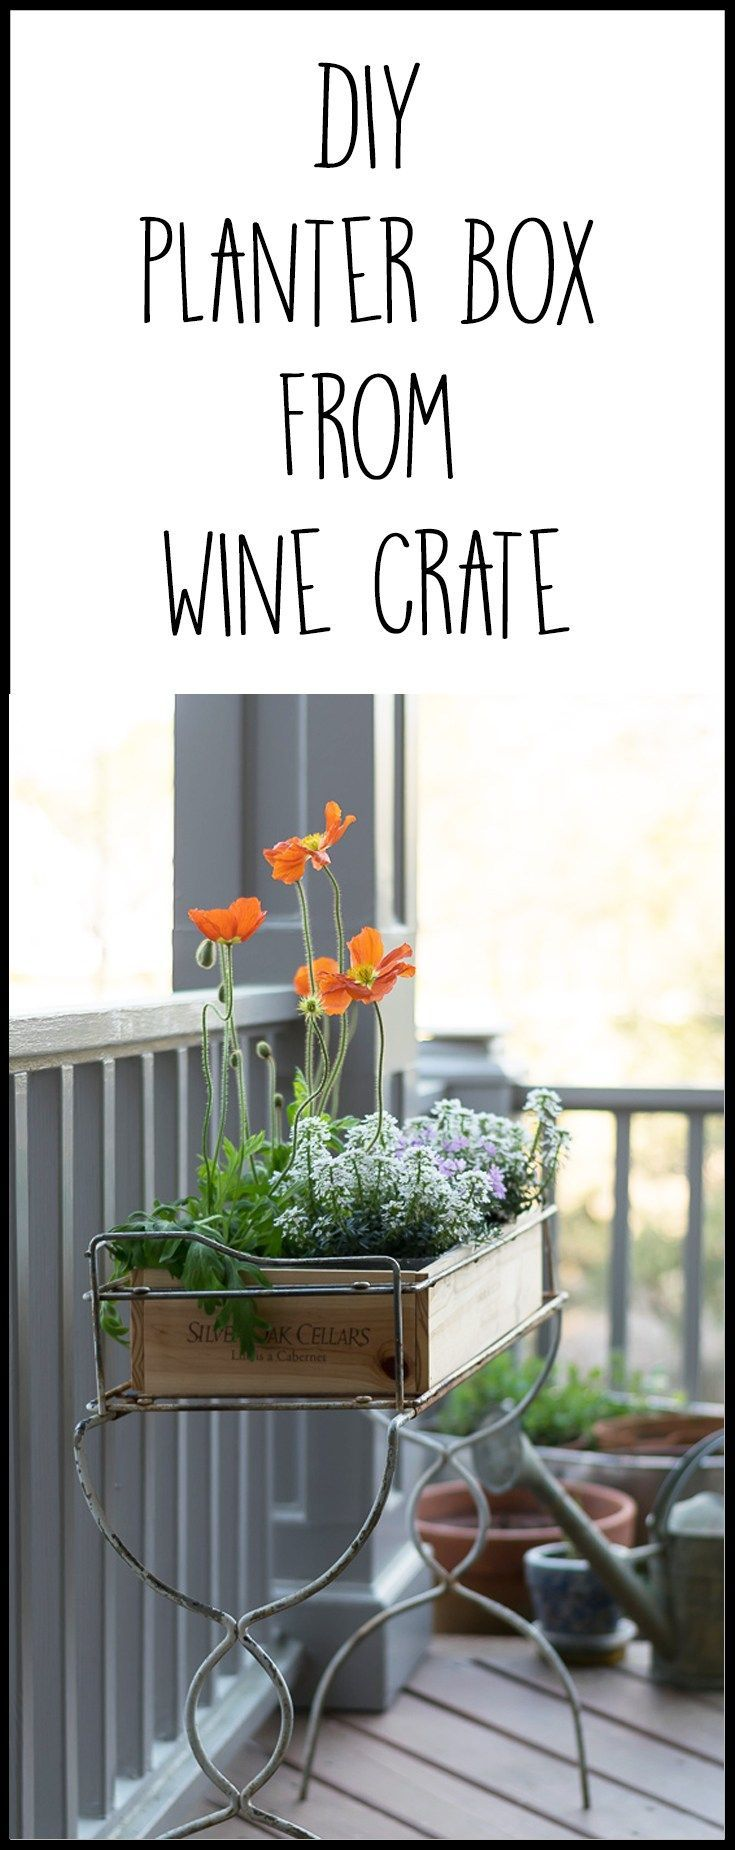 What a great upcycle and repurpose! A wooden wine crate makes a great planter fo...